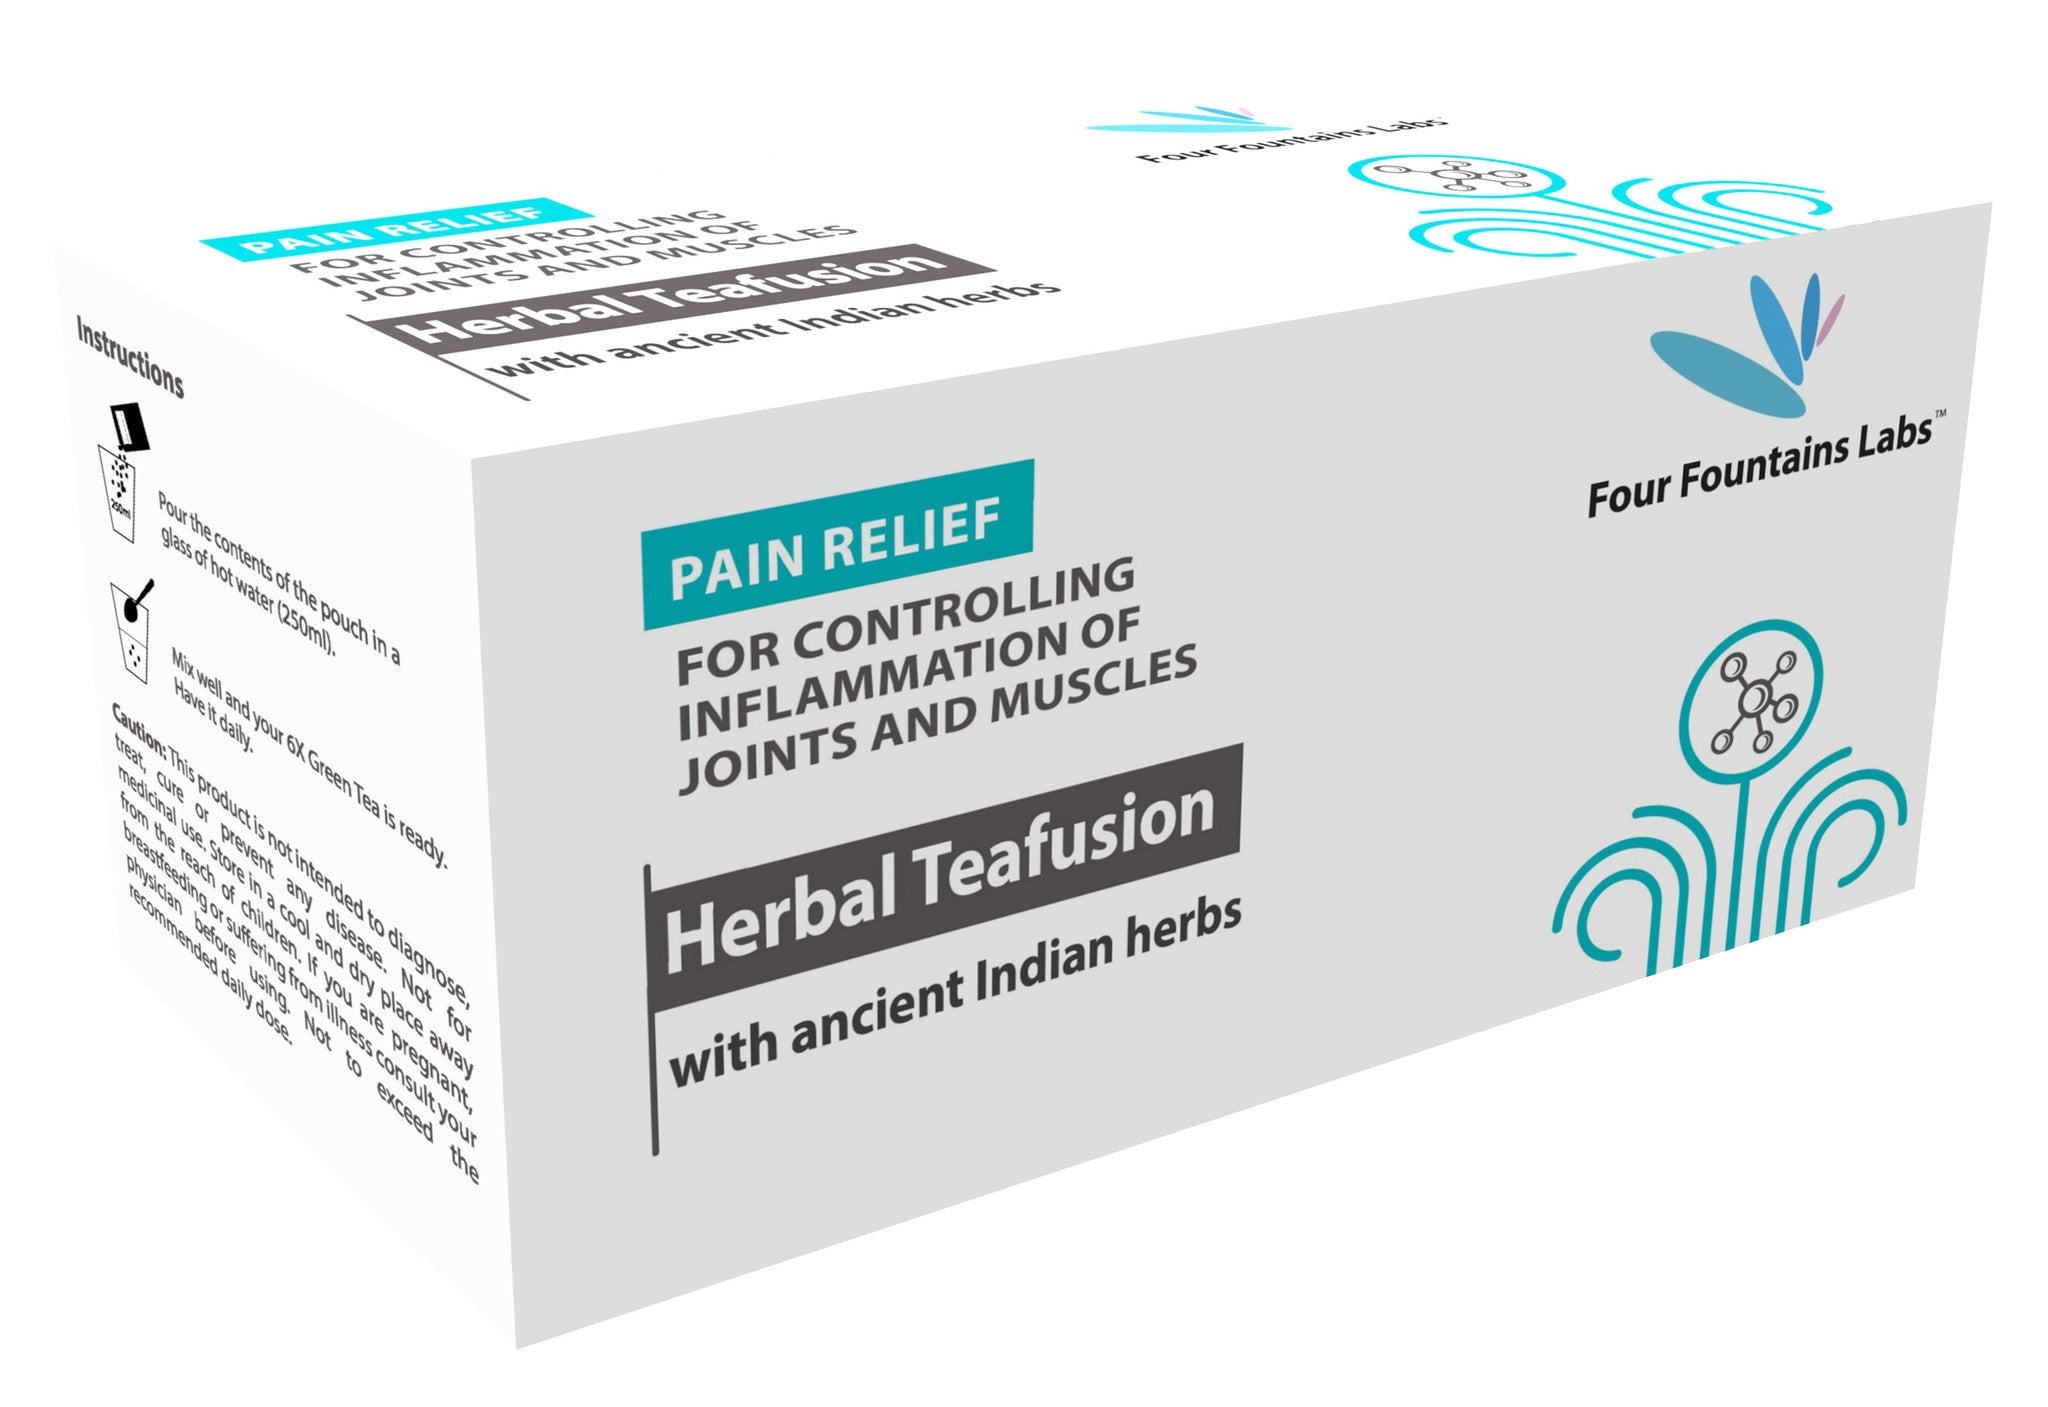 Herbal Teafusion-containing Boswellia Serrata and Ginseng for Pain Relief and reducing Inflammation (1 Month Supply)